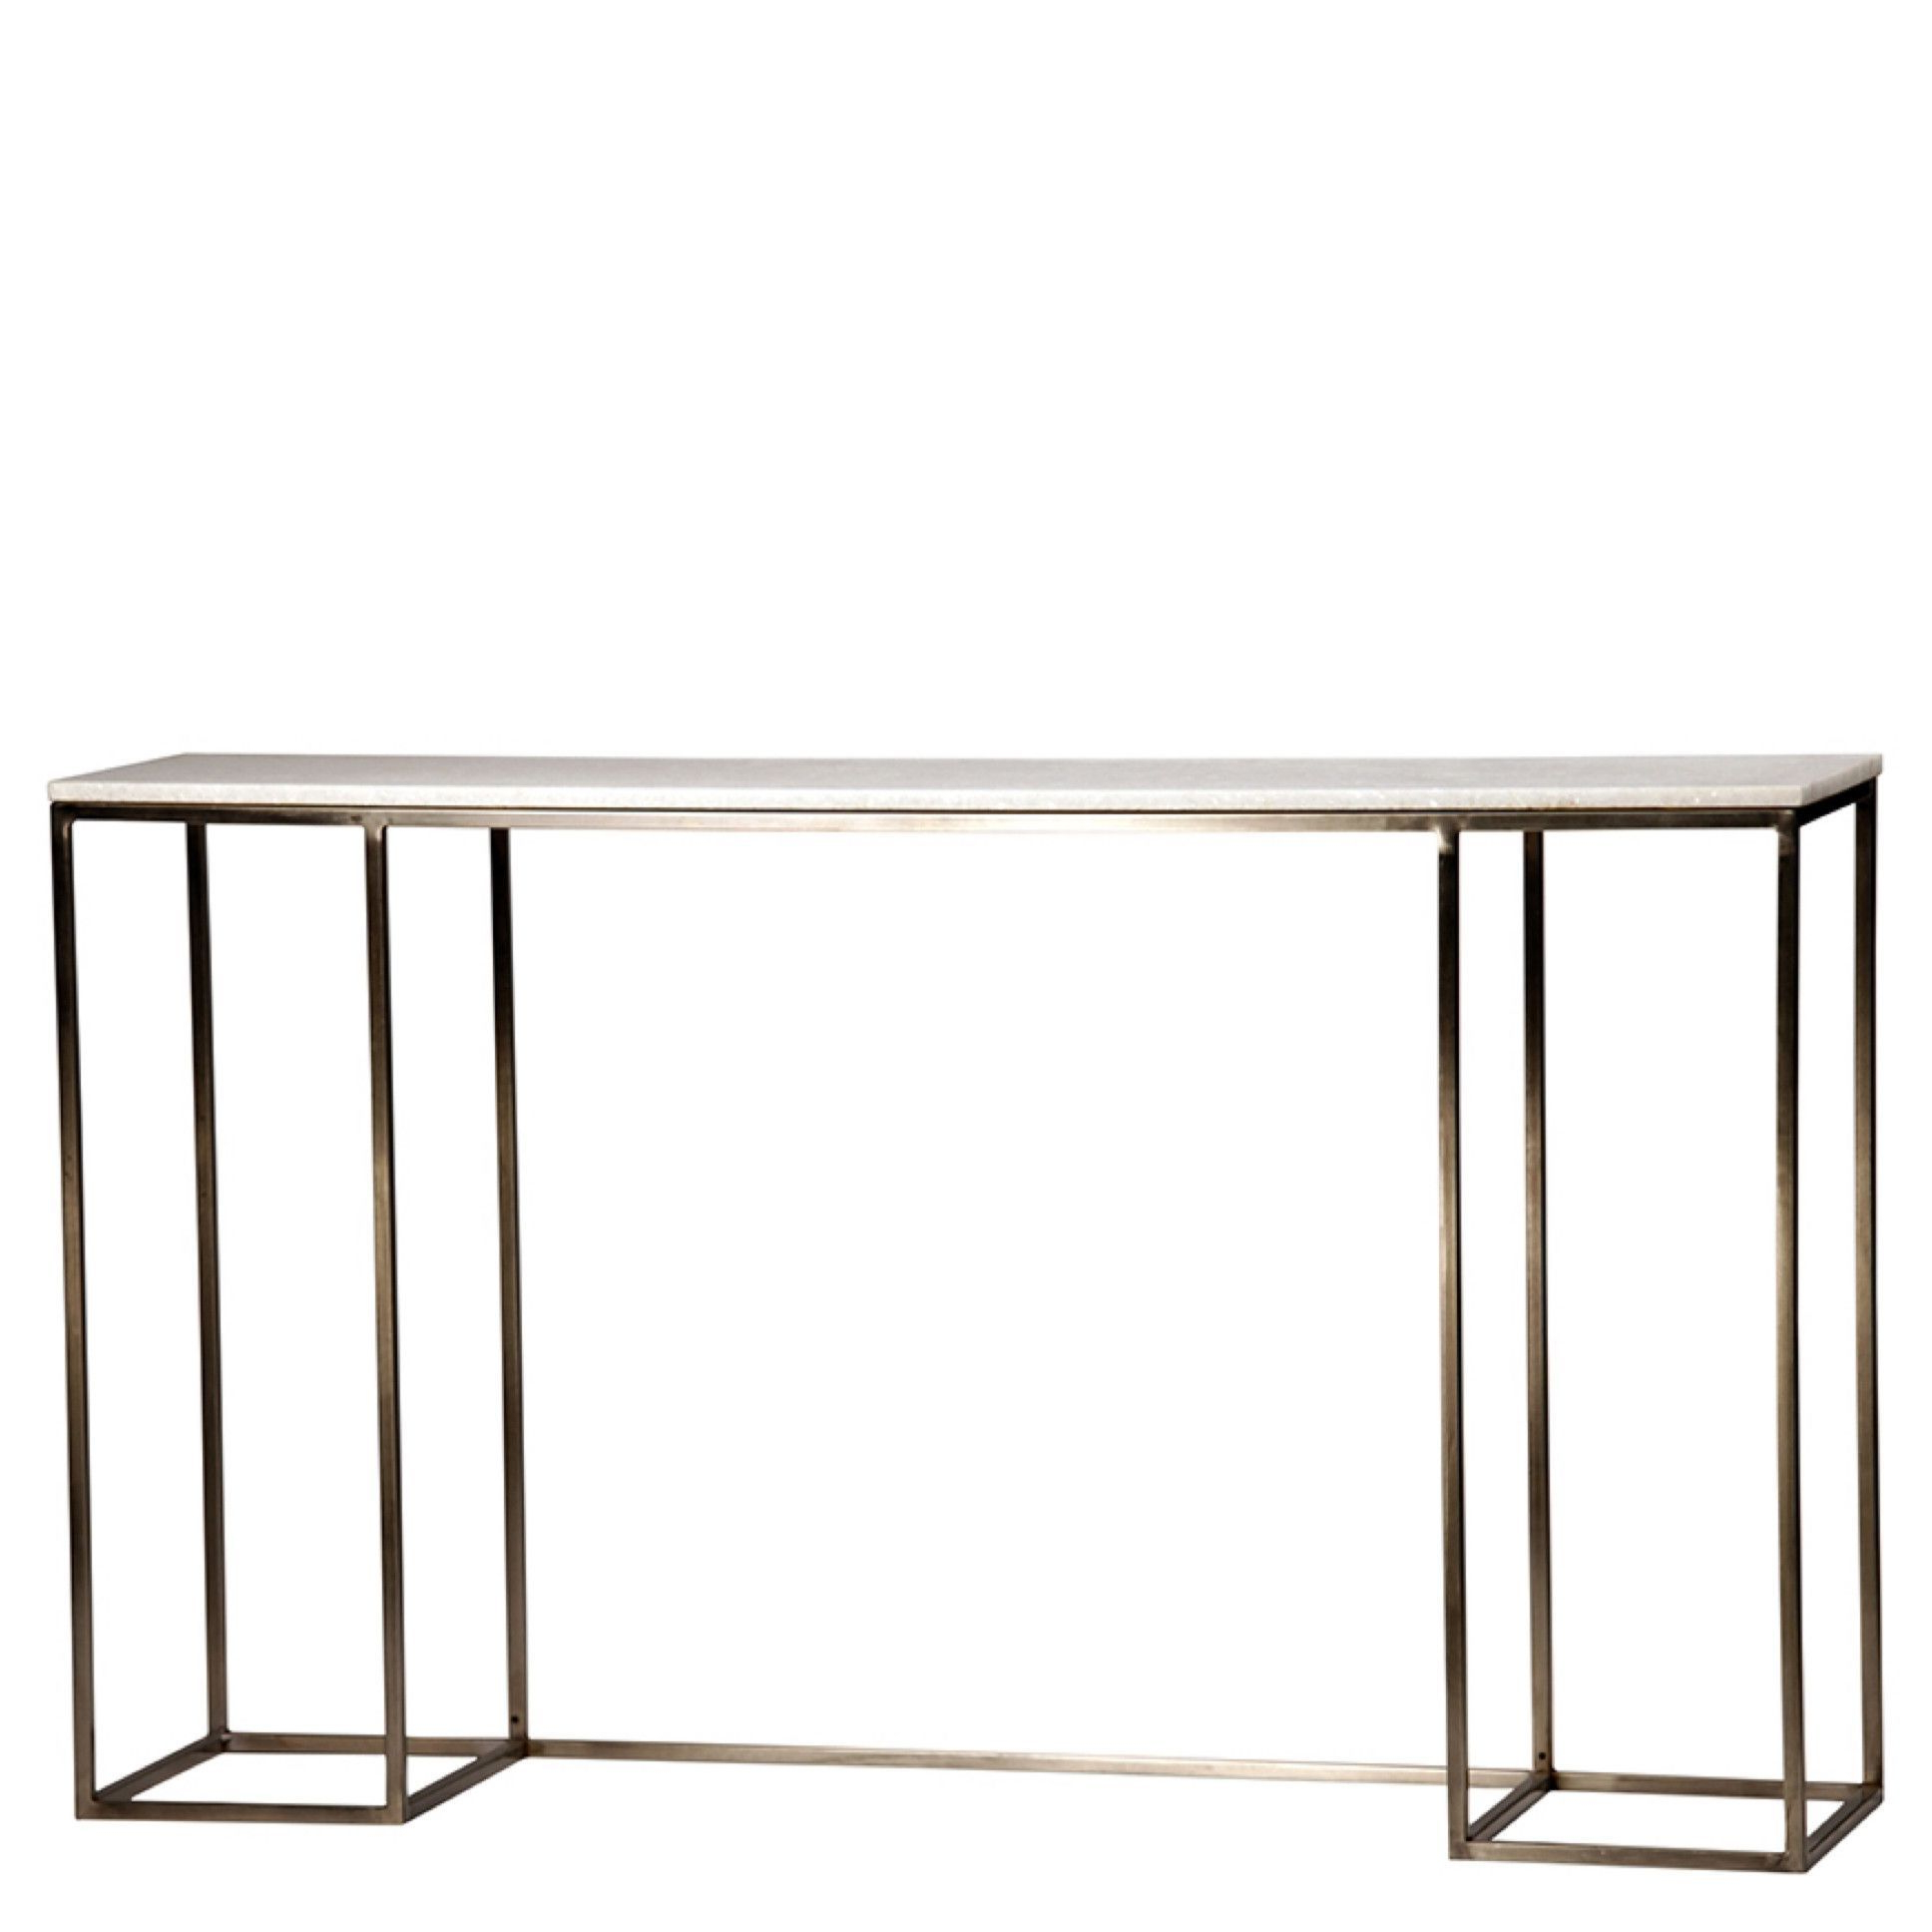 Sydney Console Table | Products | Pinterest | Console Table, Table Inside Silviano 60 Inch Iron Console Tables (Gallery 9 of 20)